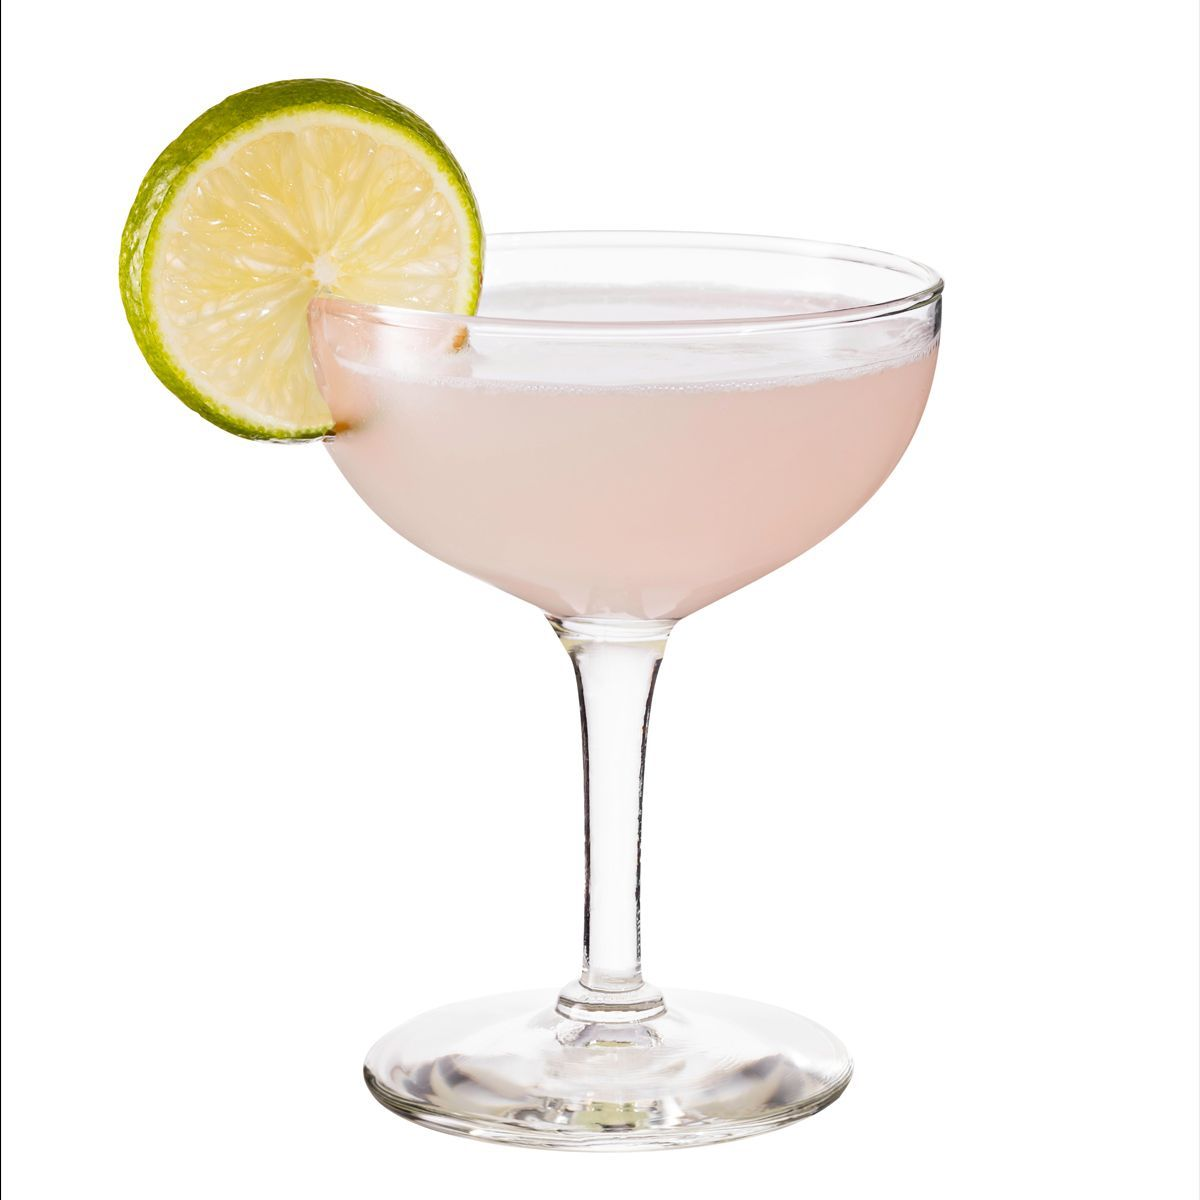 While there are several different recipes called the White Lion, this version, modeled on David Embury's, is a White Lady without egg white and with lime instead of lemon.